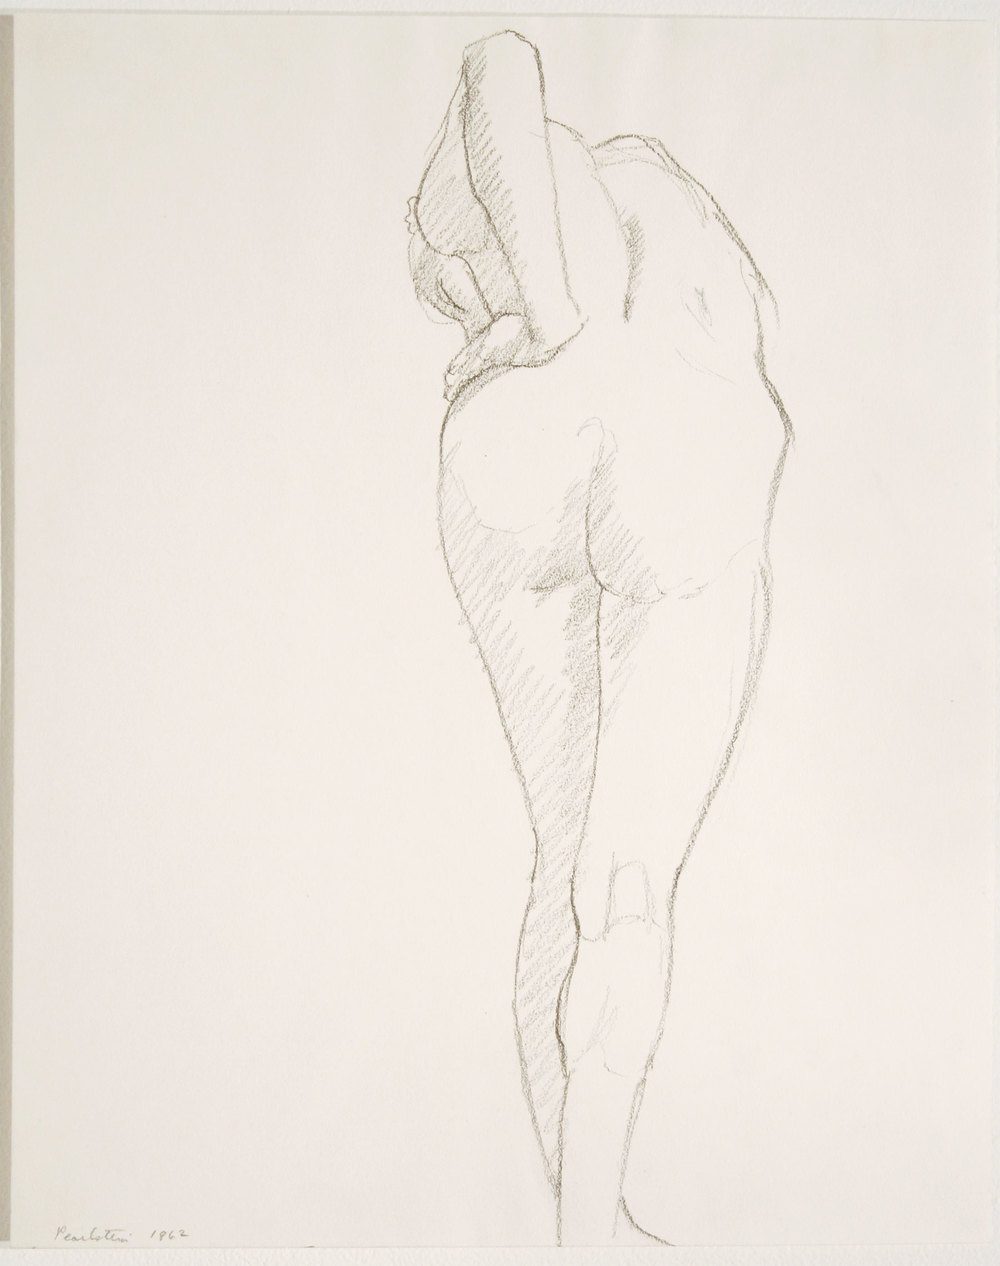 STOOPING NUDE , 1962 Pencil on paper 14 x 11 inches